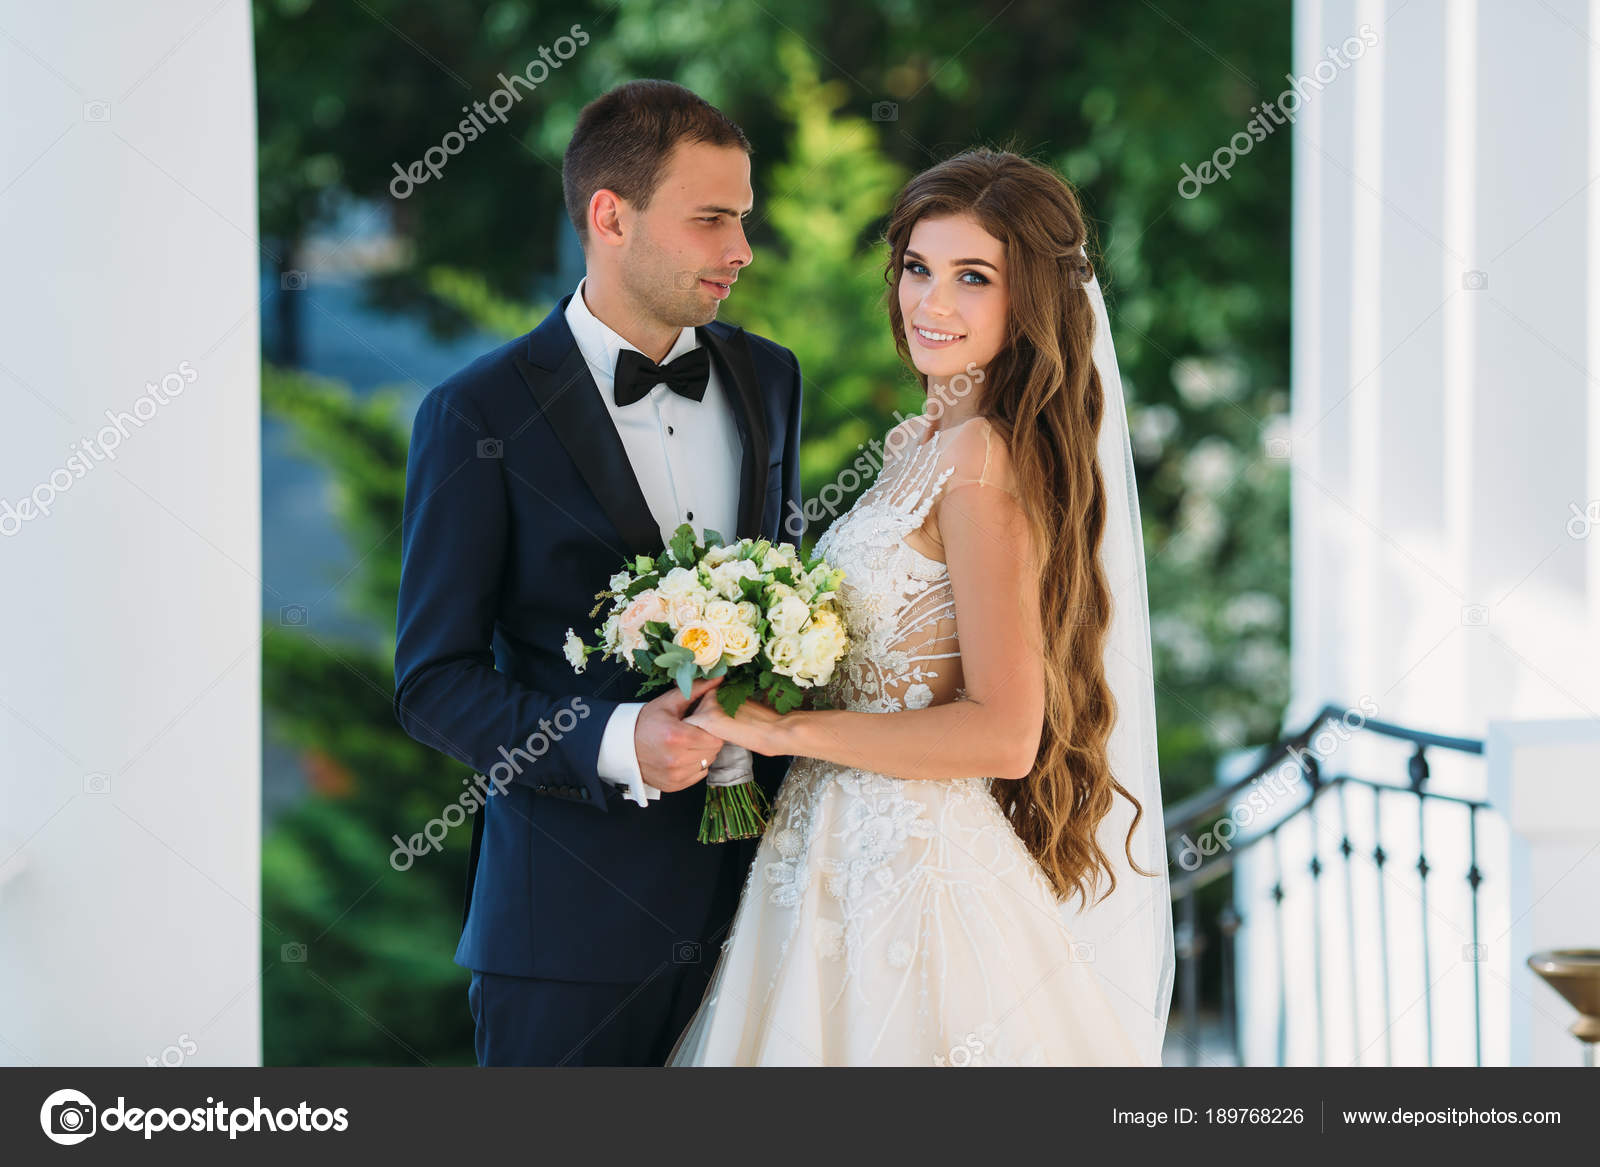 Happy Couple Hugging And Smiling In Garden With Green Trees The